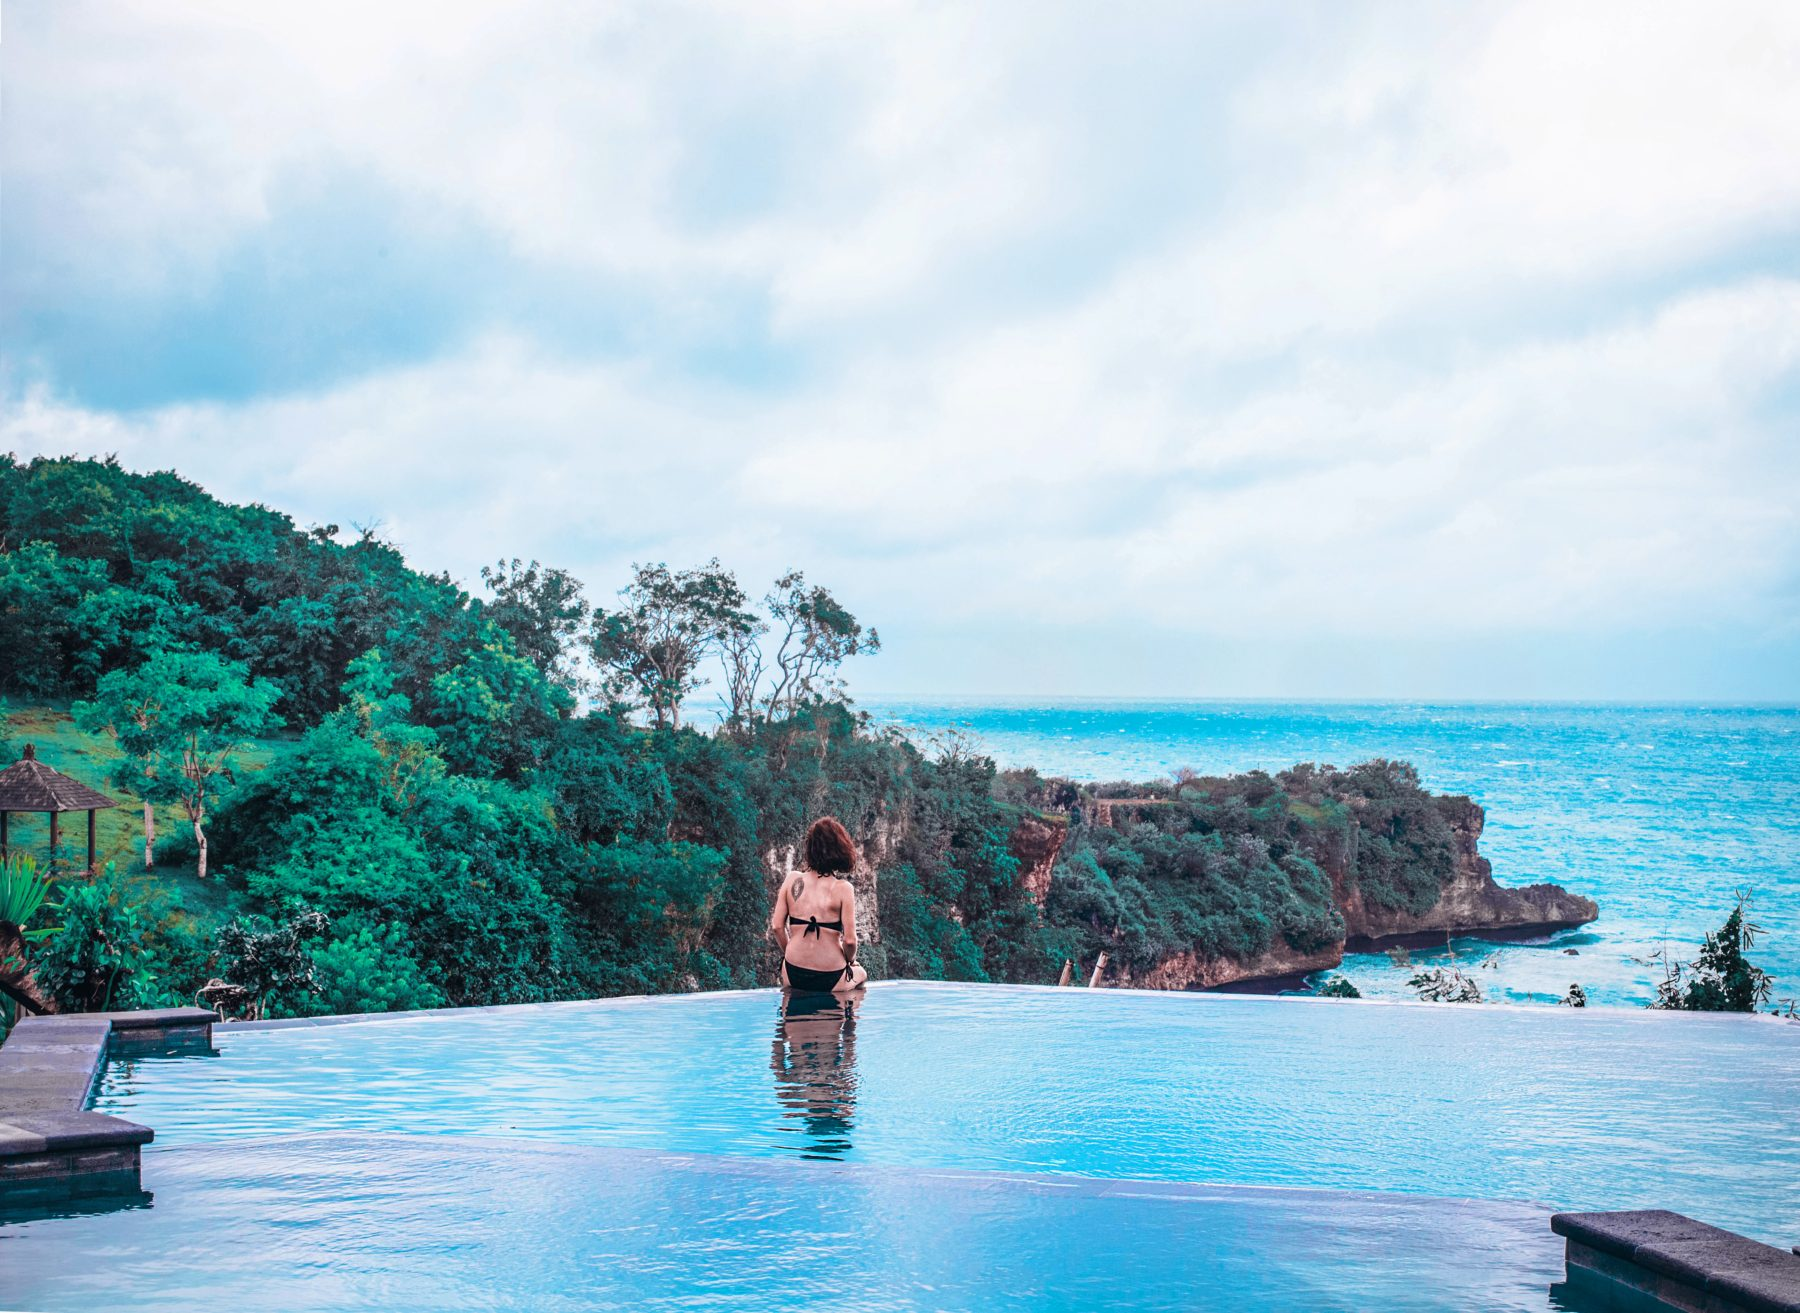 indianocean infinite pool spa day rainy season relaxing cloudy